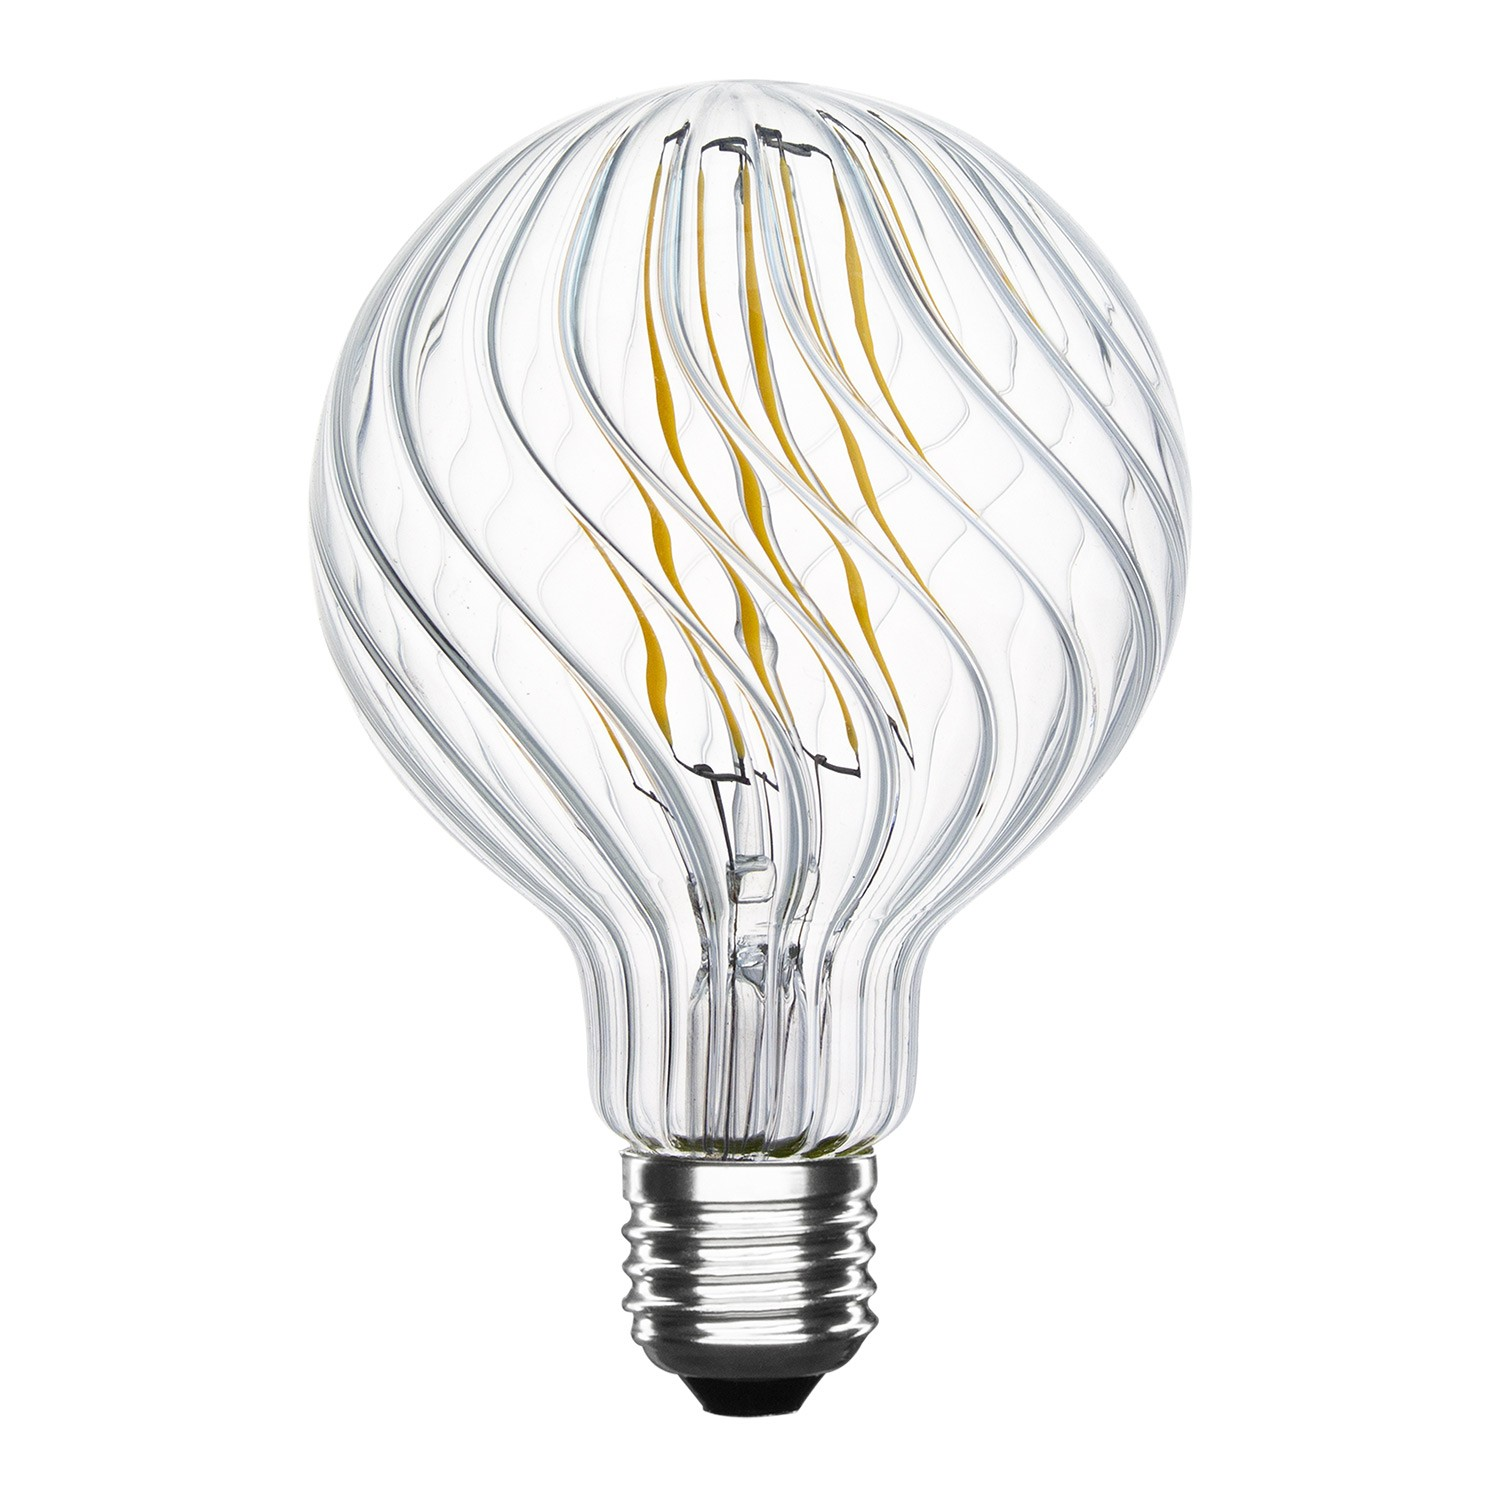 4W E27 LED Filament Verne Bulb (Dimmable), gallery image 1